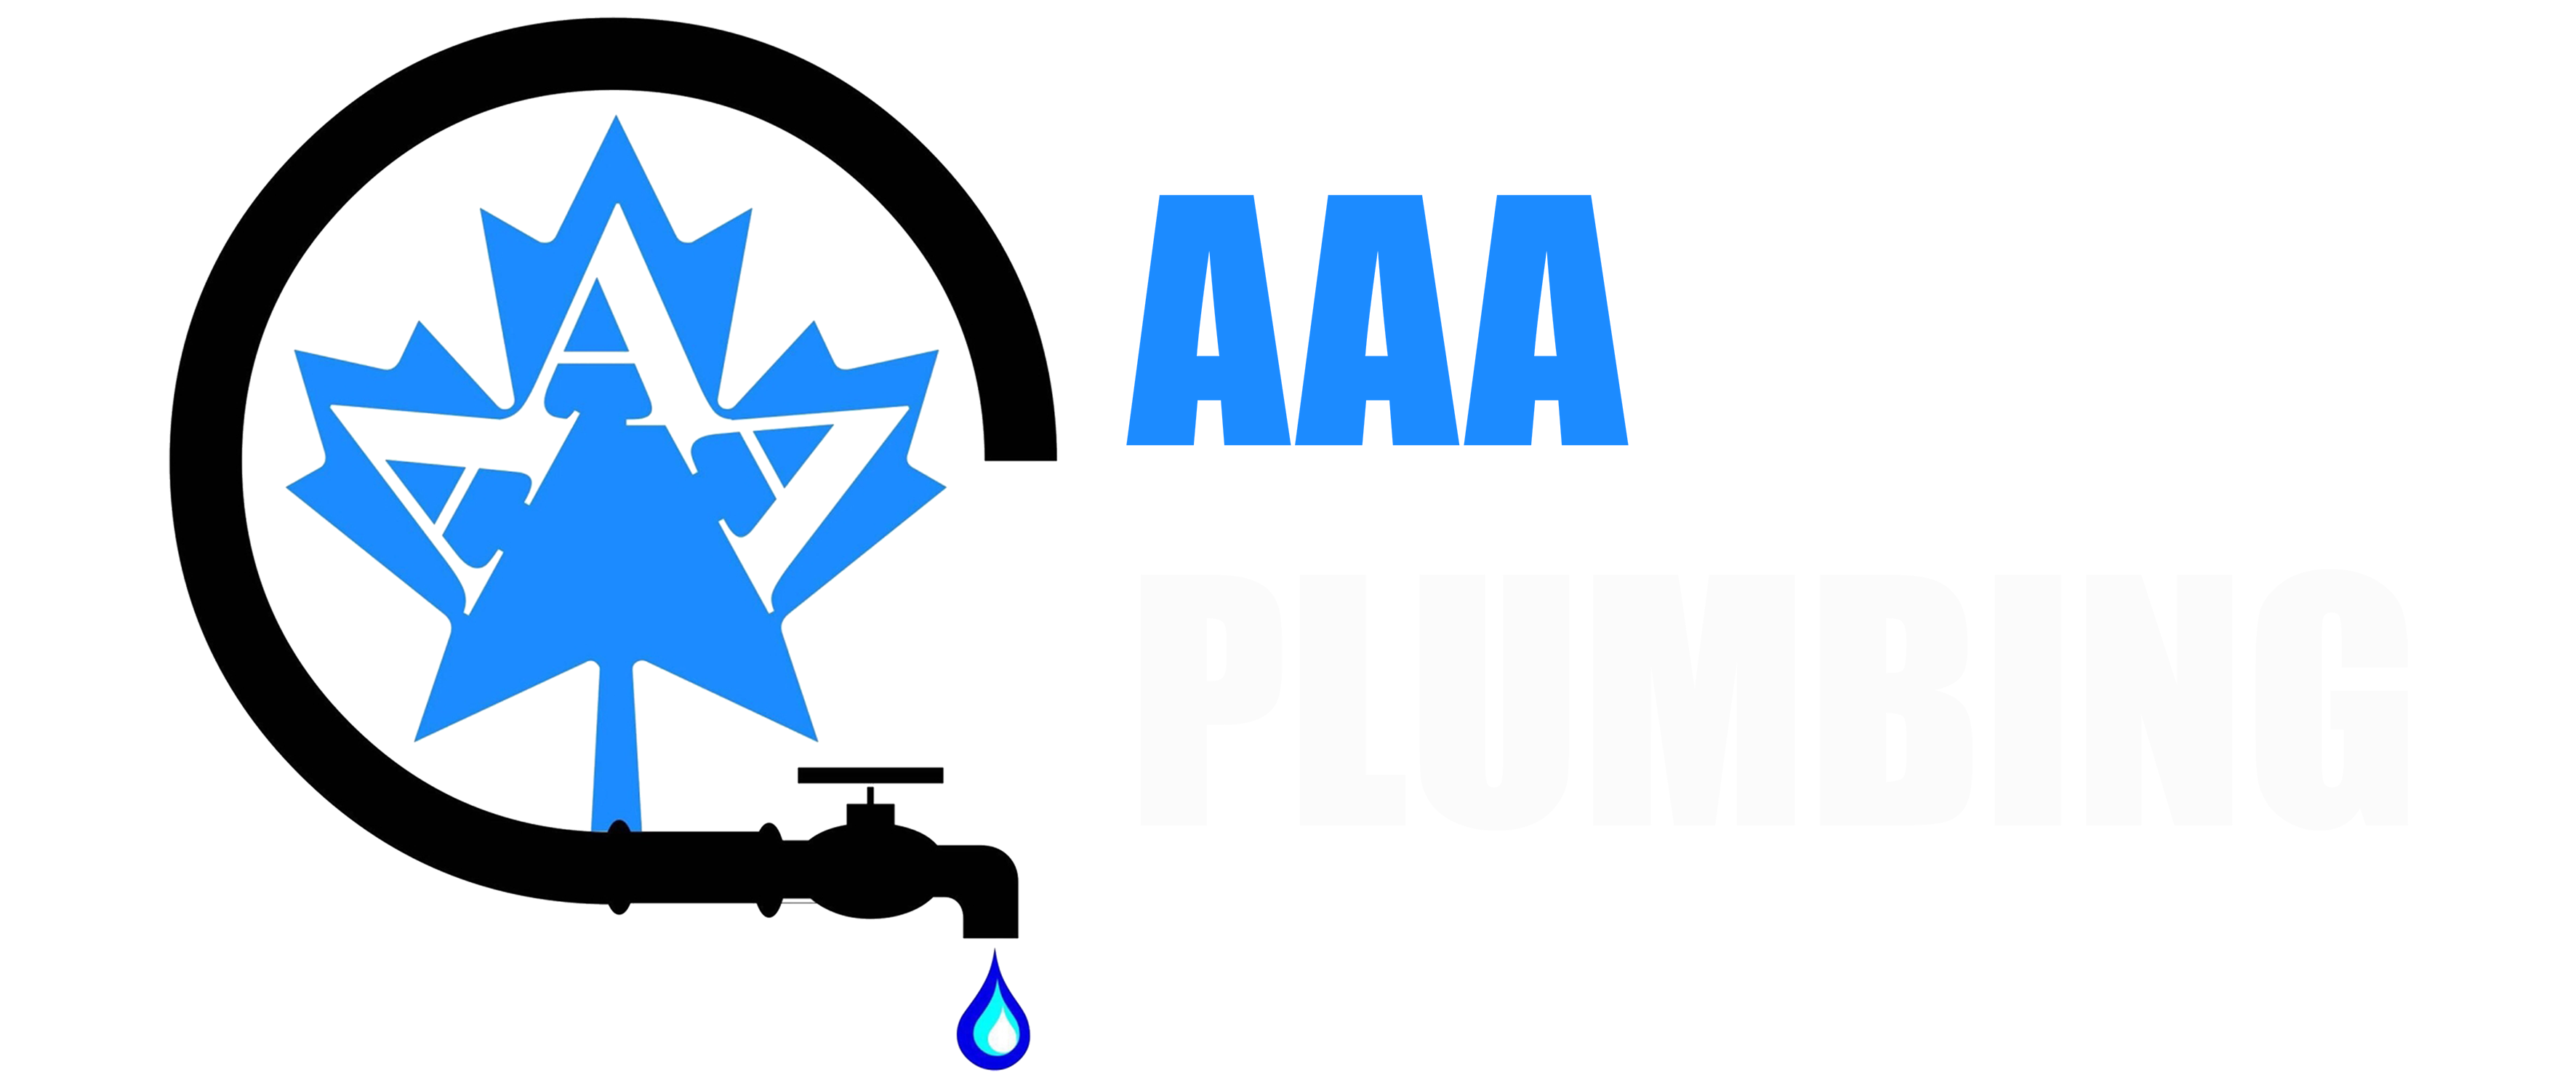 fl plumbing eagle swfl aaa commercial logo naples residential test